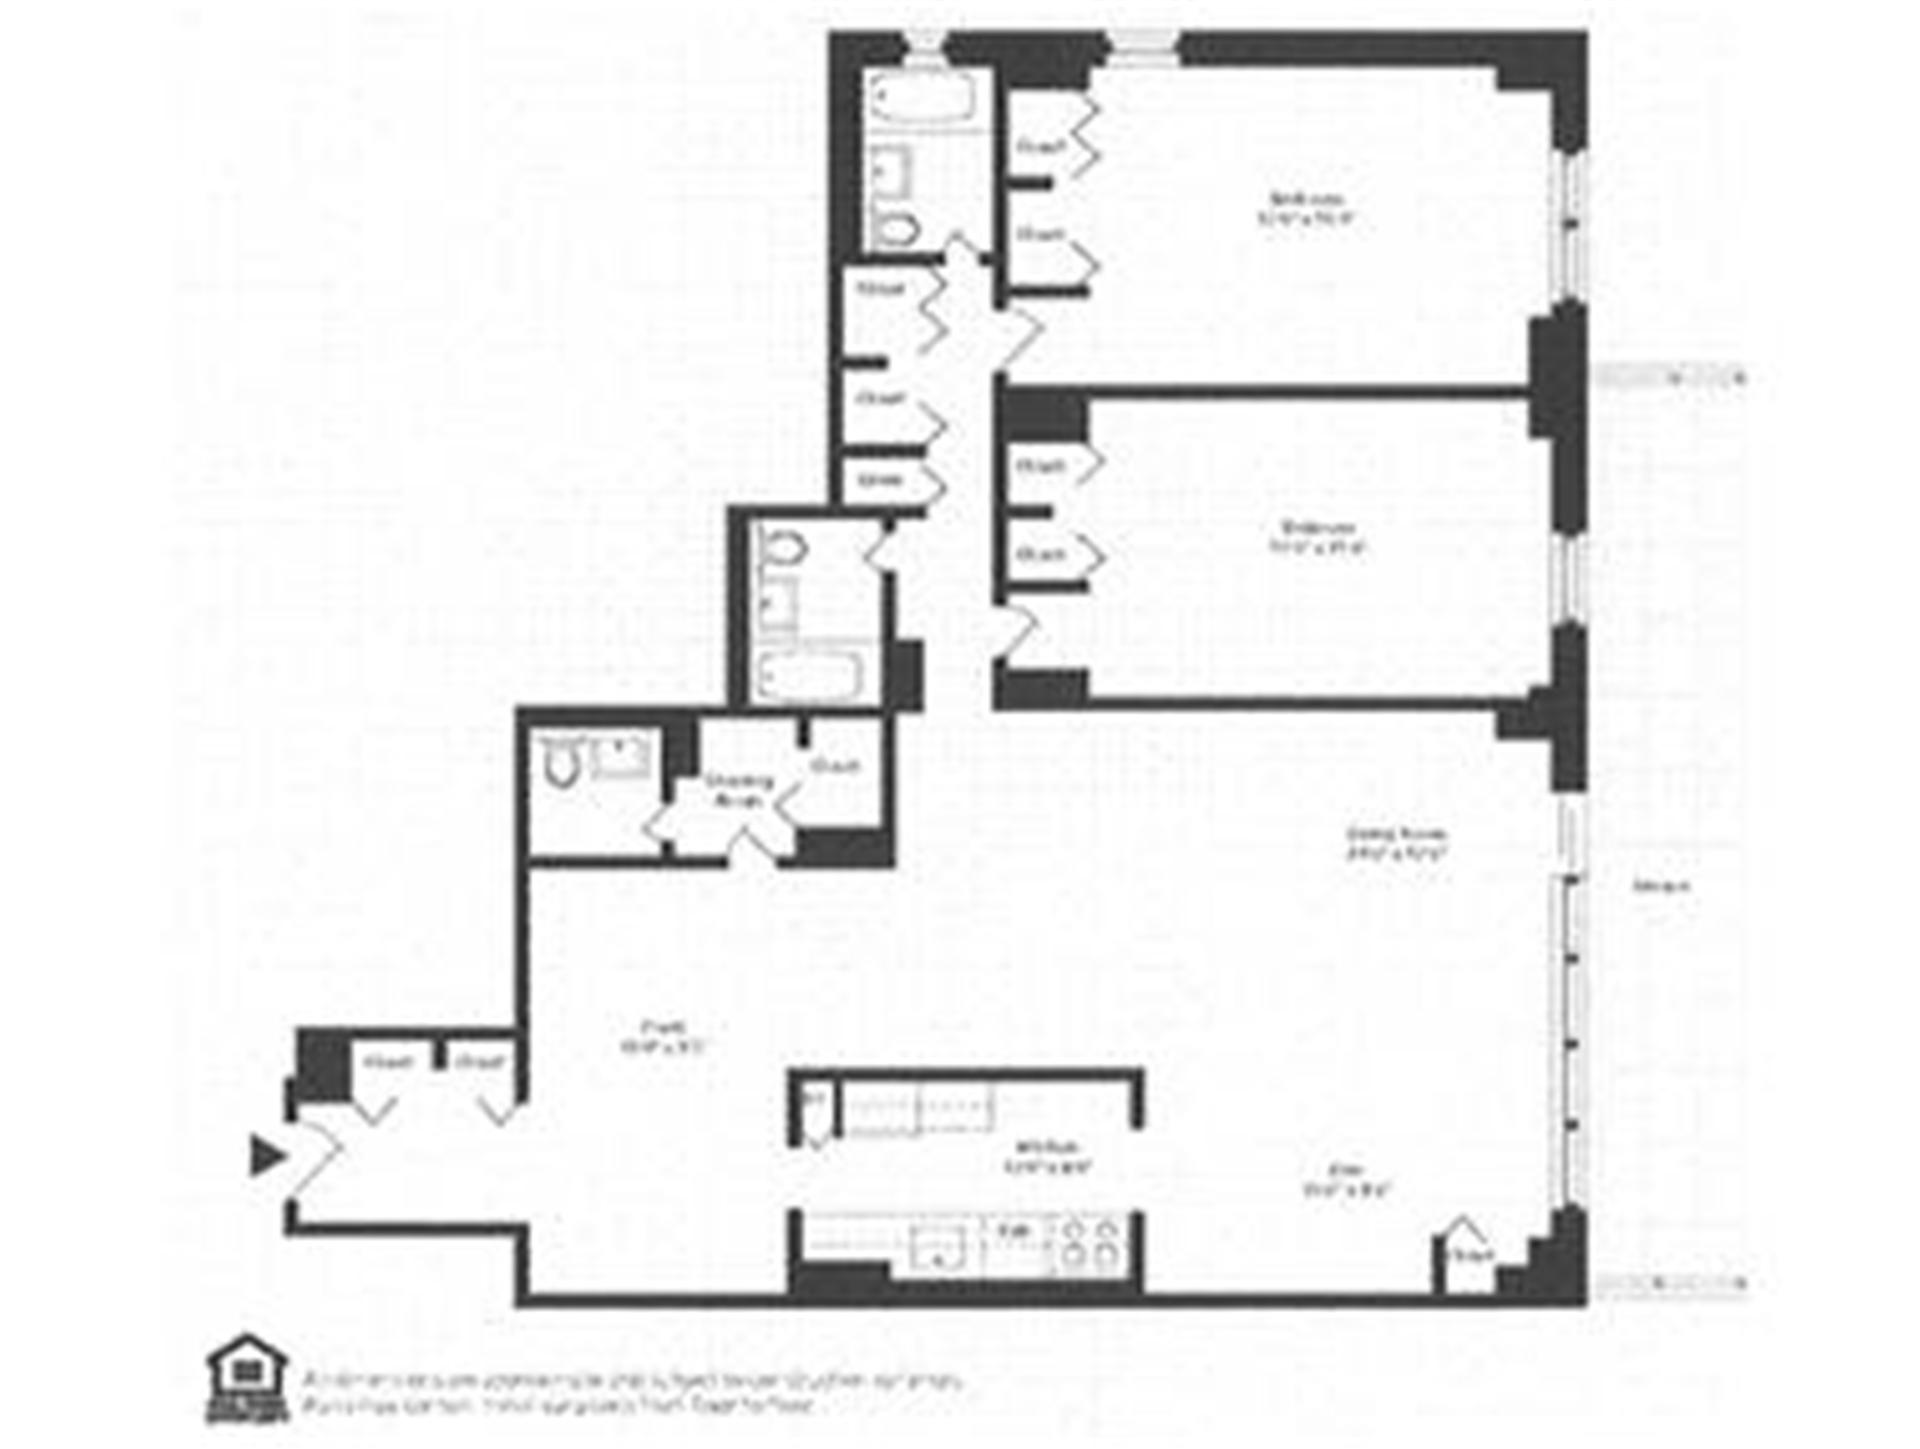 Floor plan of NEW YORK TOWERS, 305 East 24th Street, 7W - Gramercy - Union Square, New York